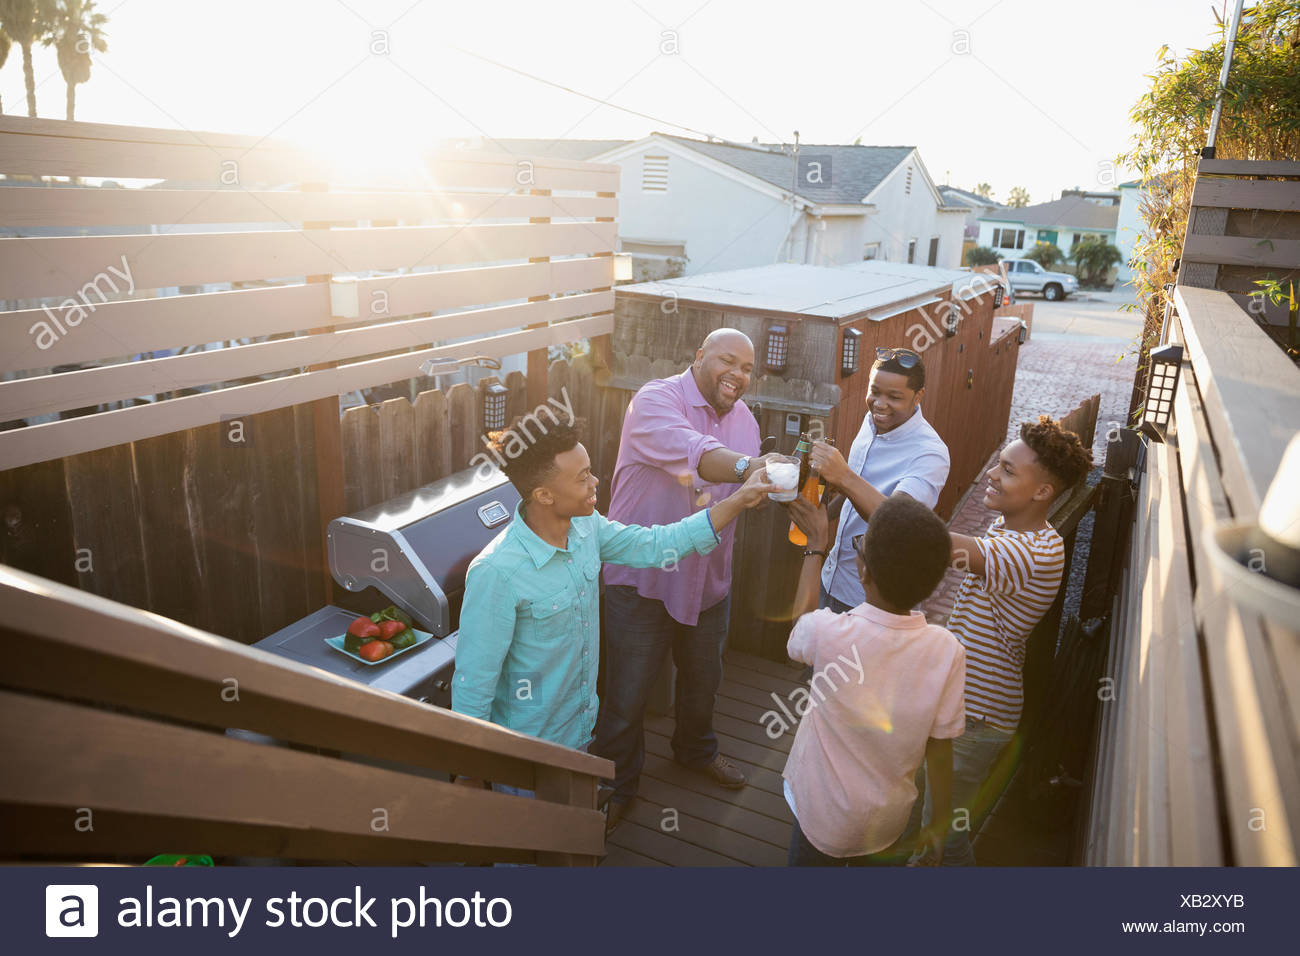 African American family toasting beer and soda, barbecuing on summer deck - Stock Image